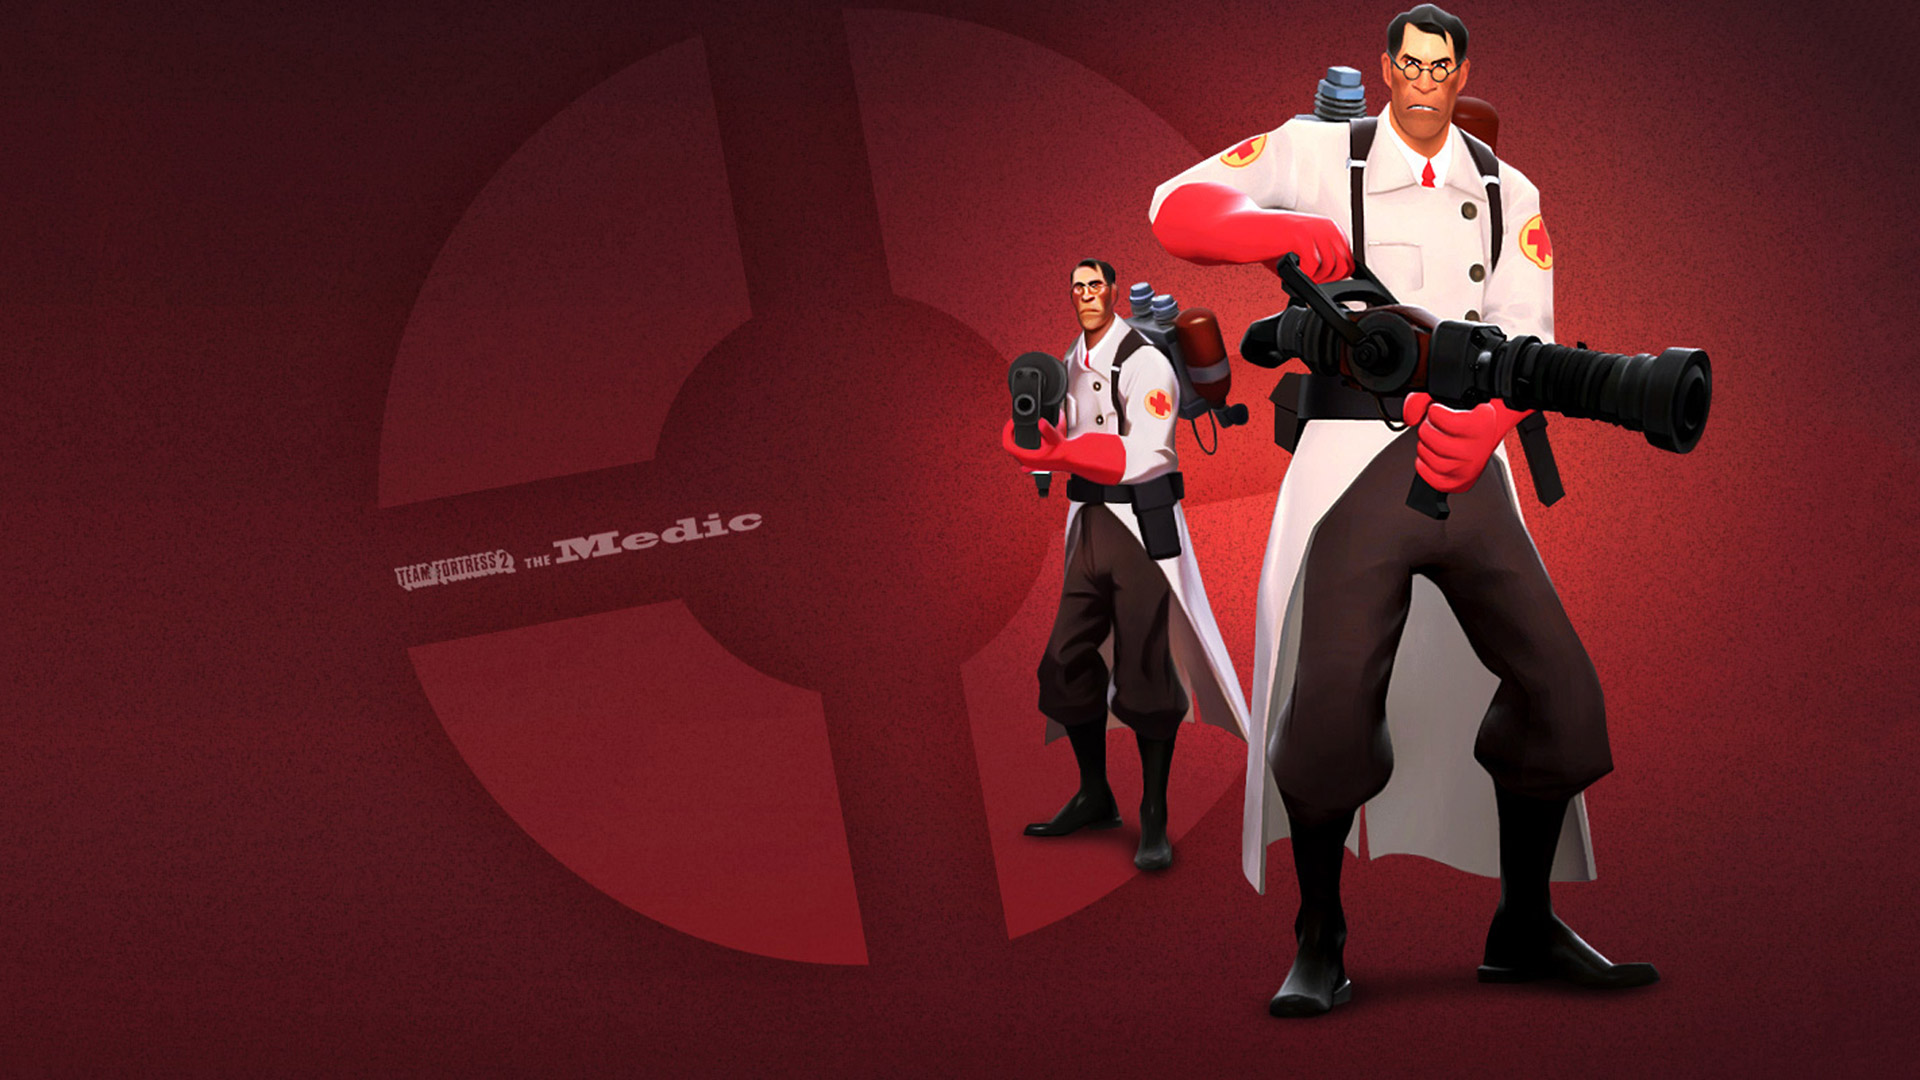 Team Fortress 2 Wallpaper in 1920x1080